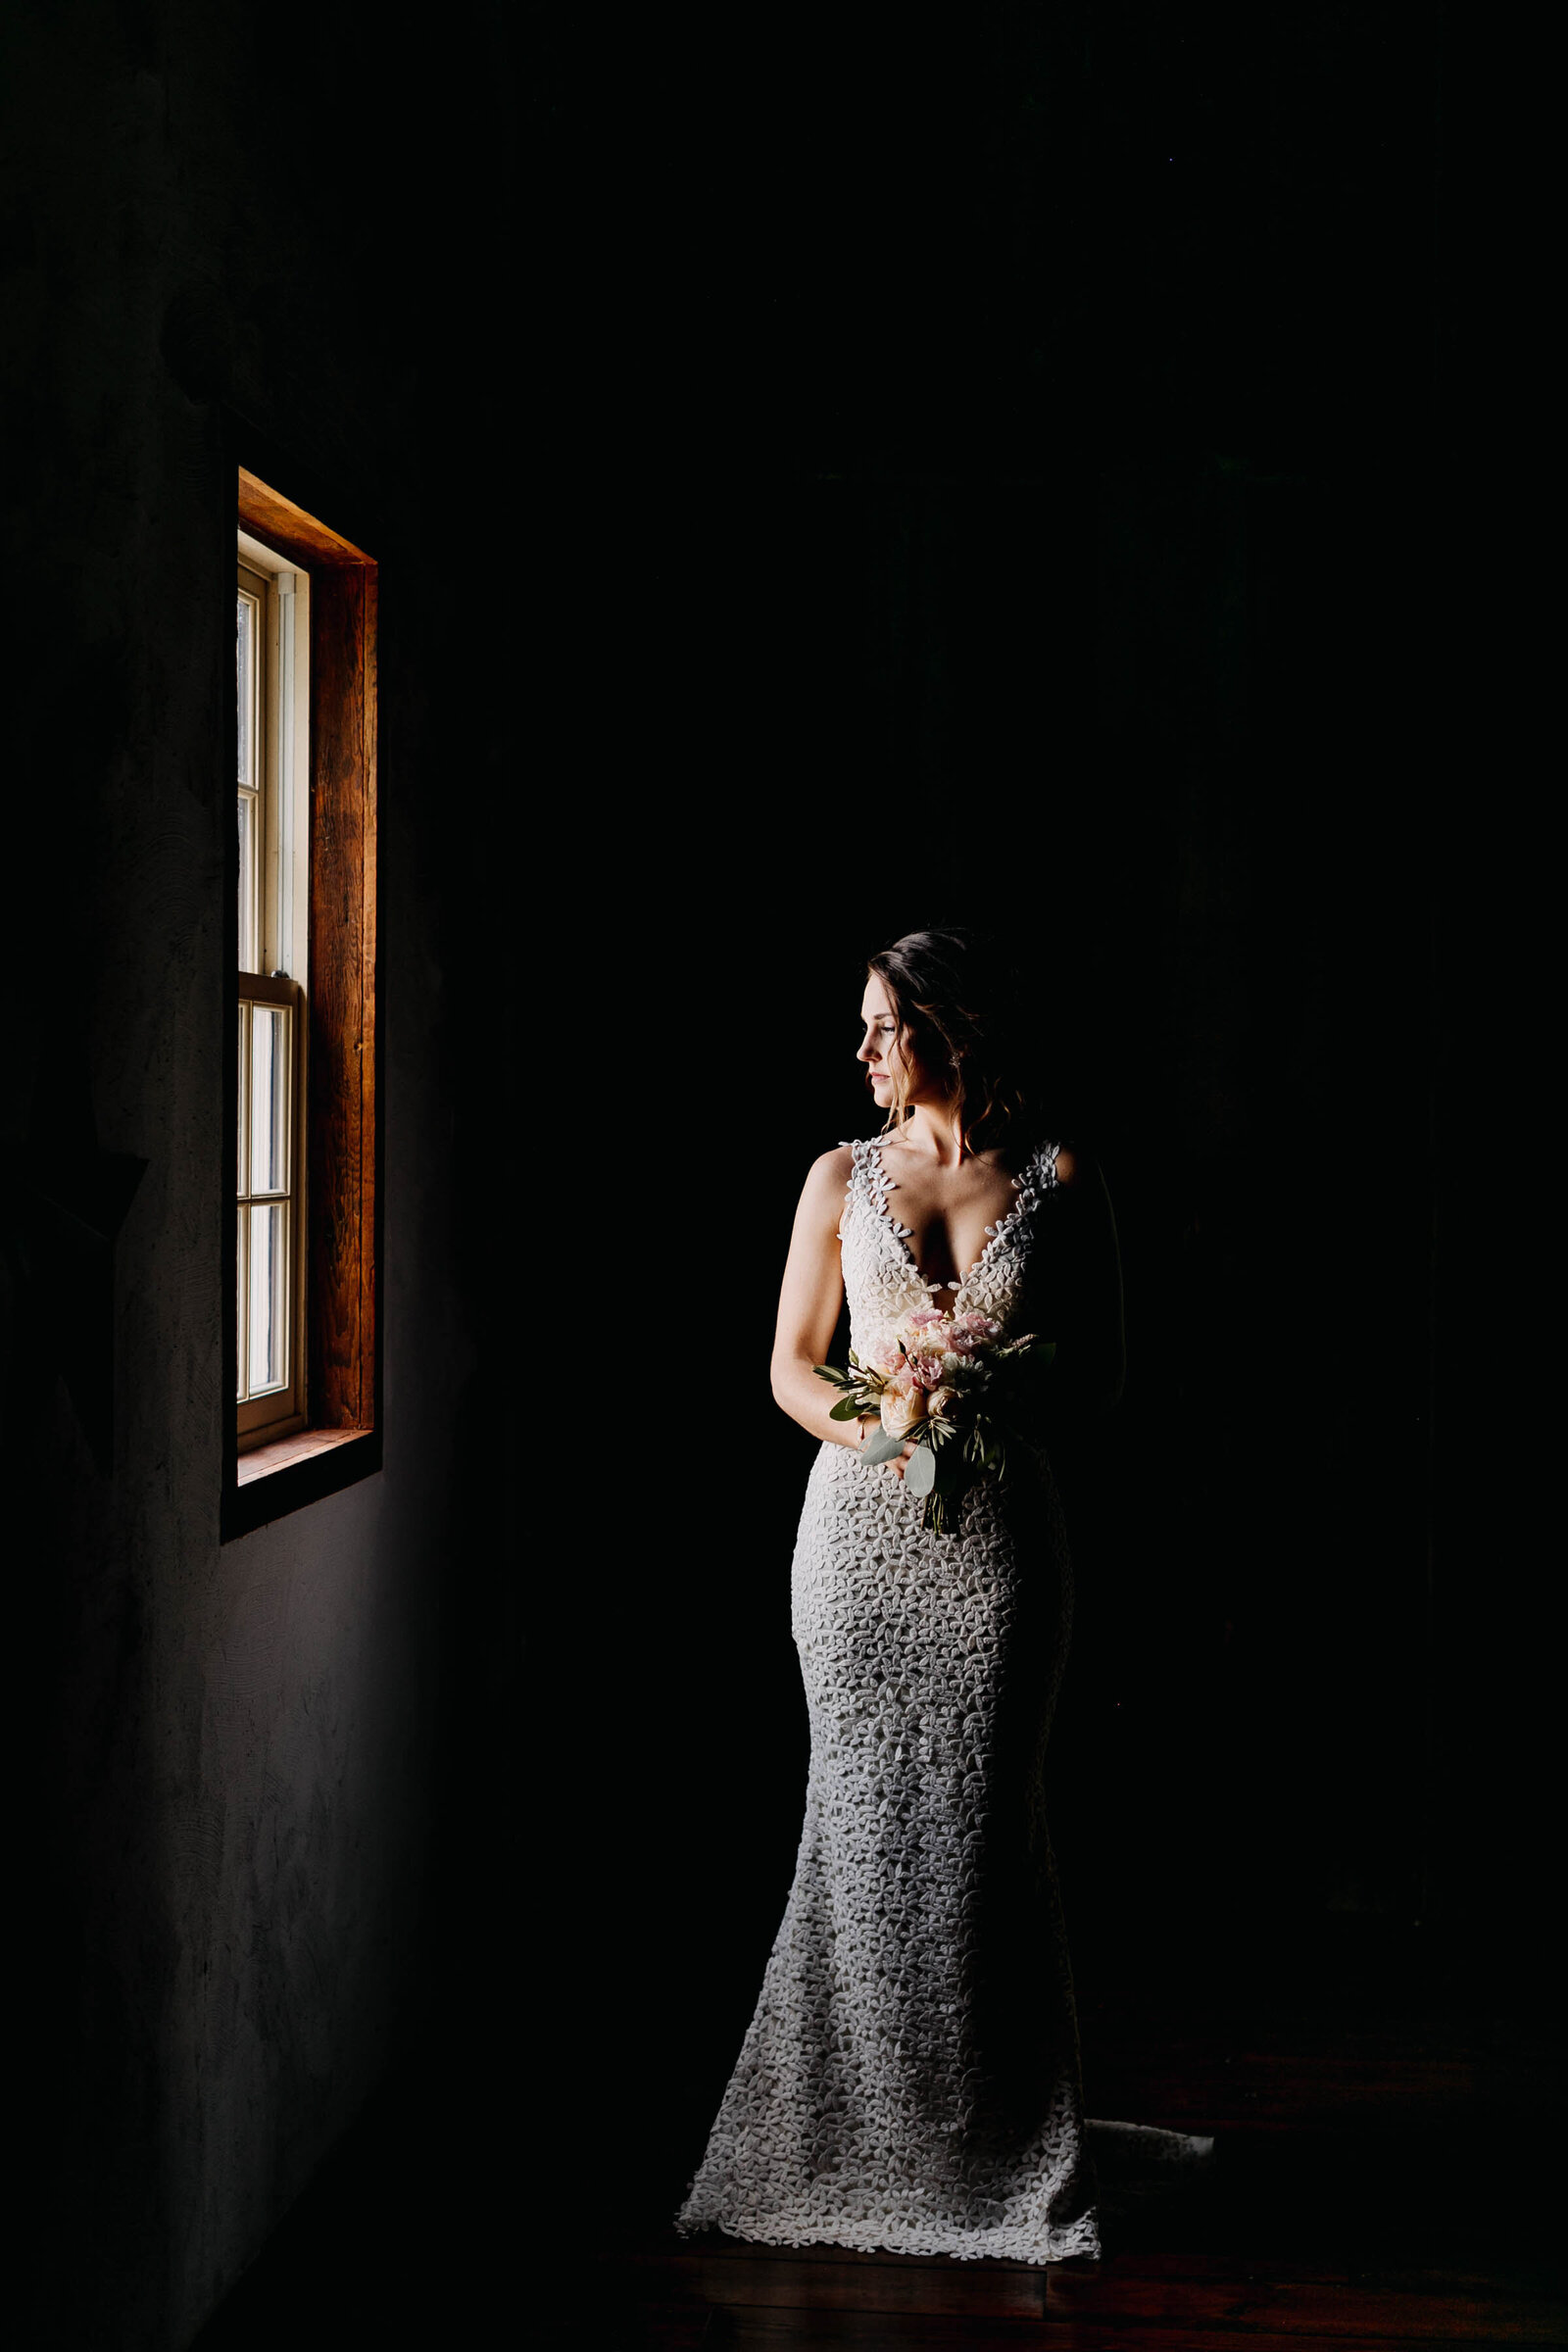 bride looking out window with moody light